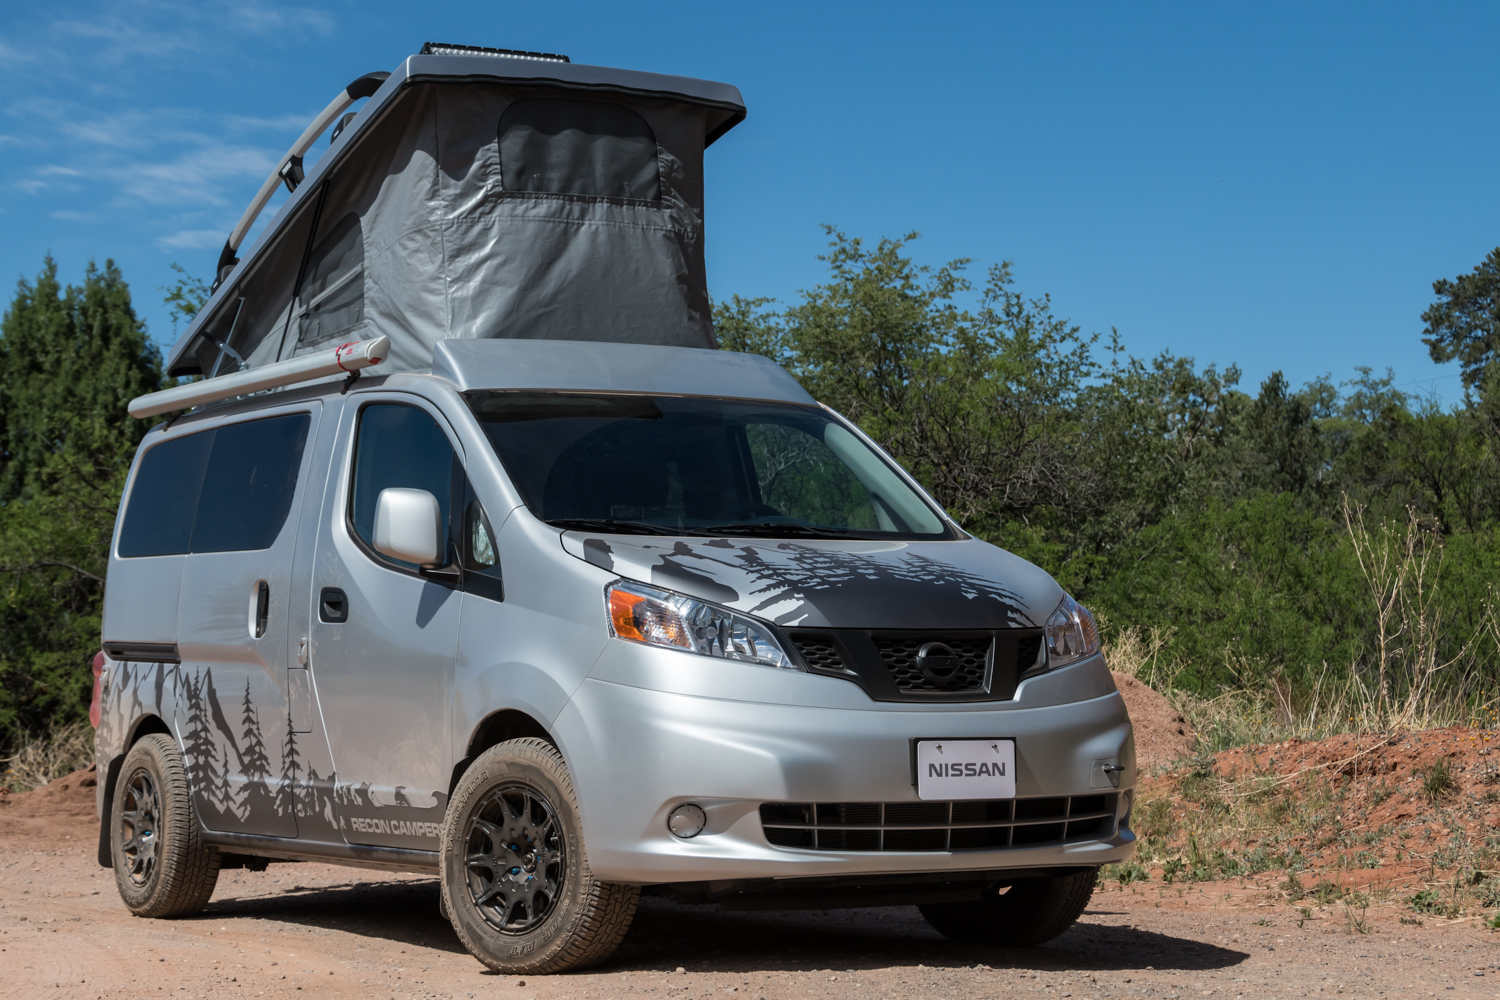 Nissan Nv2500 Camper >> Recon Fills Small Camper Void With Custom Nissan